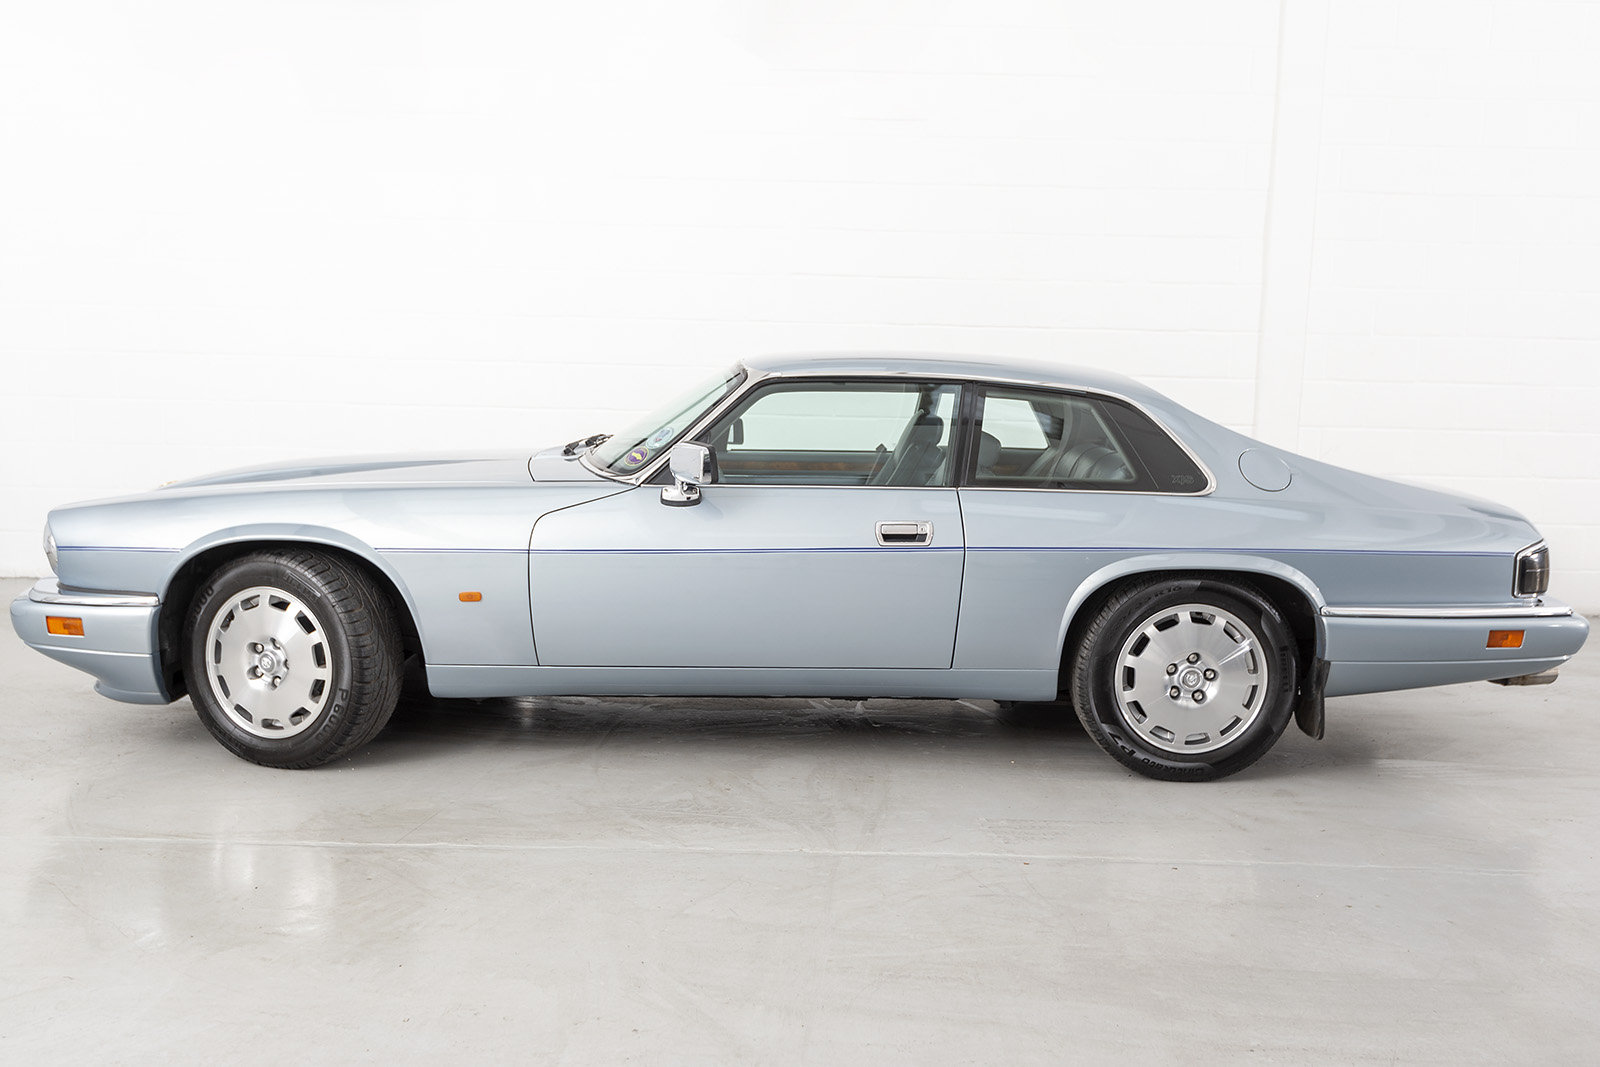 1995 1996 JAGUAR XJ-S XJS 4.0 CELEBRATION AUTO COUPE For Sale (picture 3 of 6)